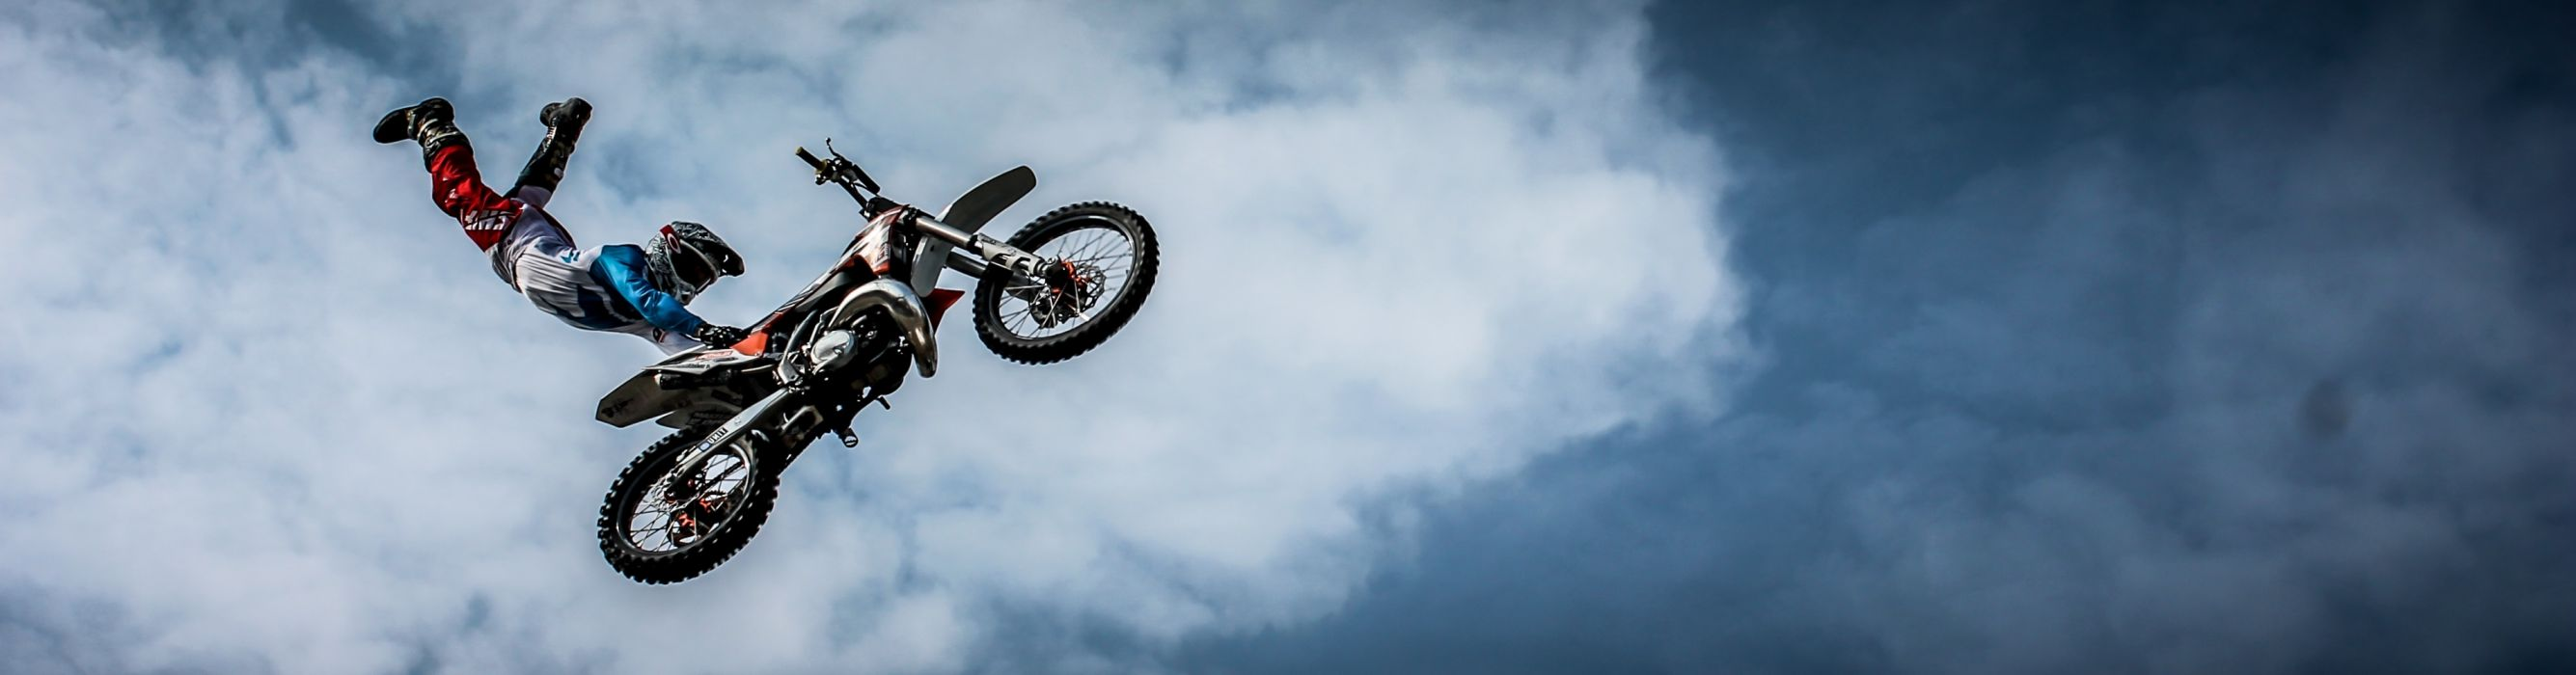 bike biker clouds extreme jumping motocross motorbike motorcycle panoramic person sky sport wallpaper